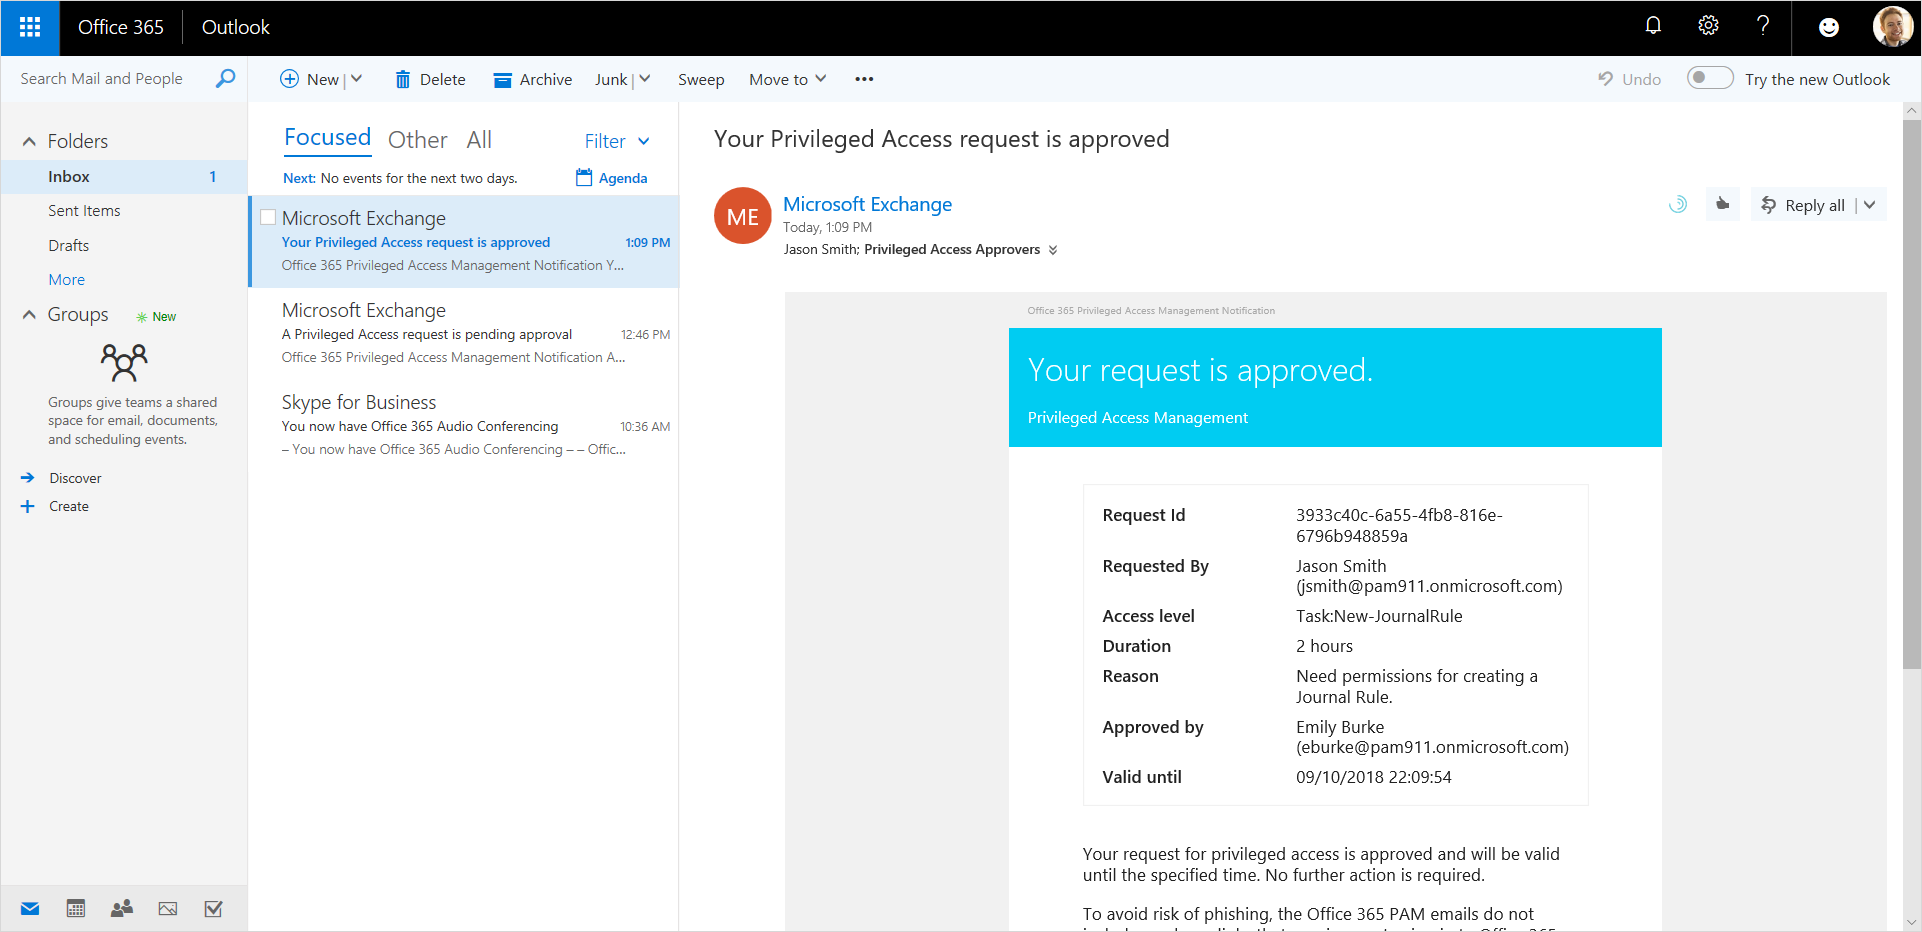 Image shows an approved Privileged Access request in Outlook.